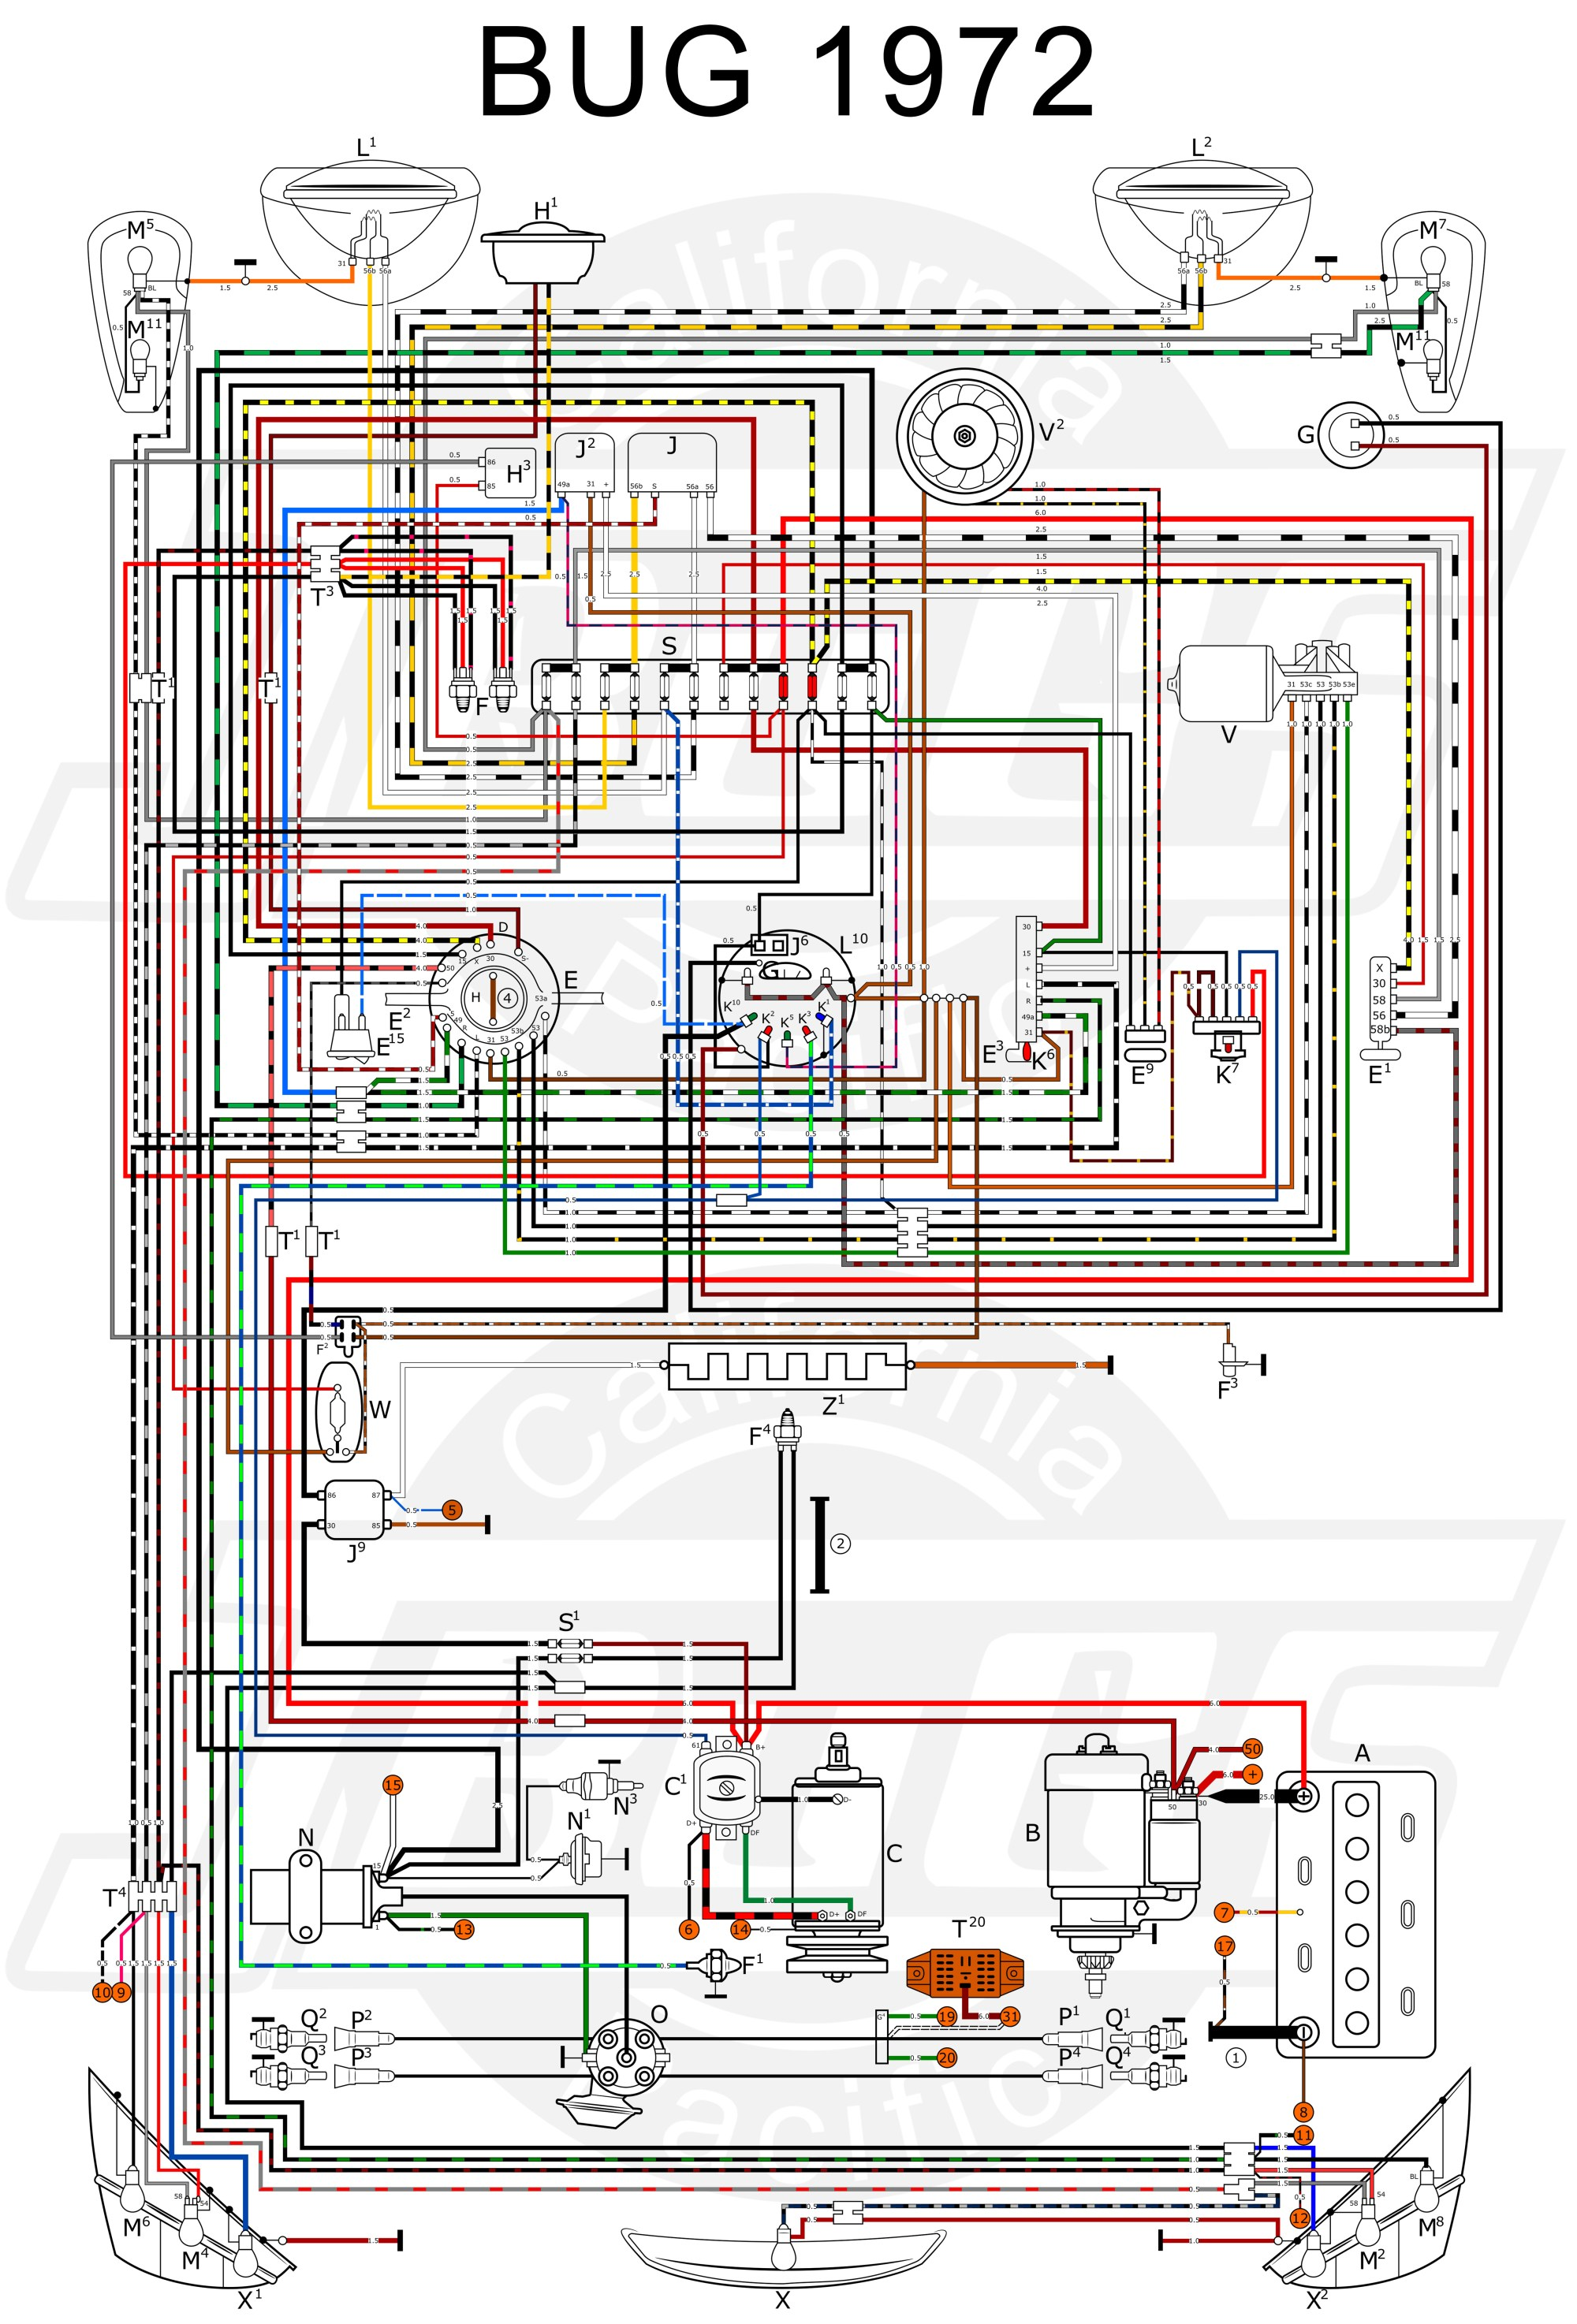 hight resolution of 1970 vw bug wiring diagram wiring diagram fuse box u2022 rh friendsoffido co vw beetle hood 1970 vw beetle headlight switch